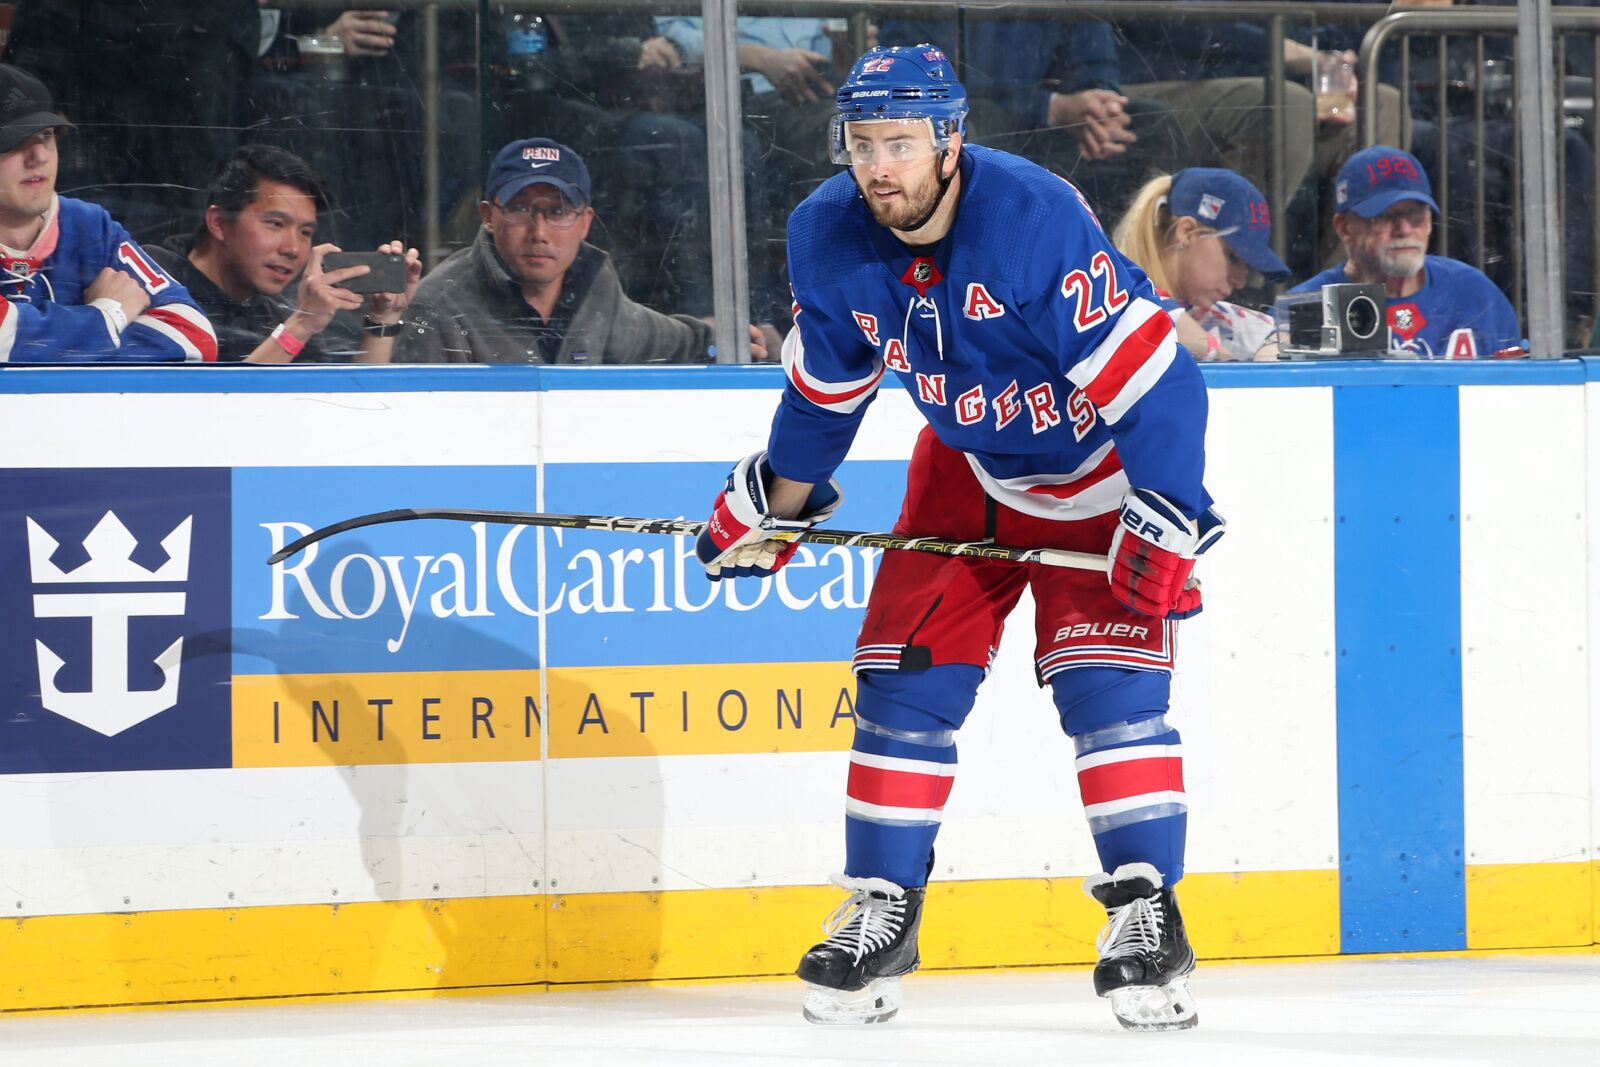 ebc078a8 Tampa Bay Lightning sign Kevin Shattenkirk to one-year deal